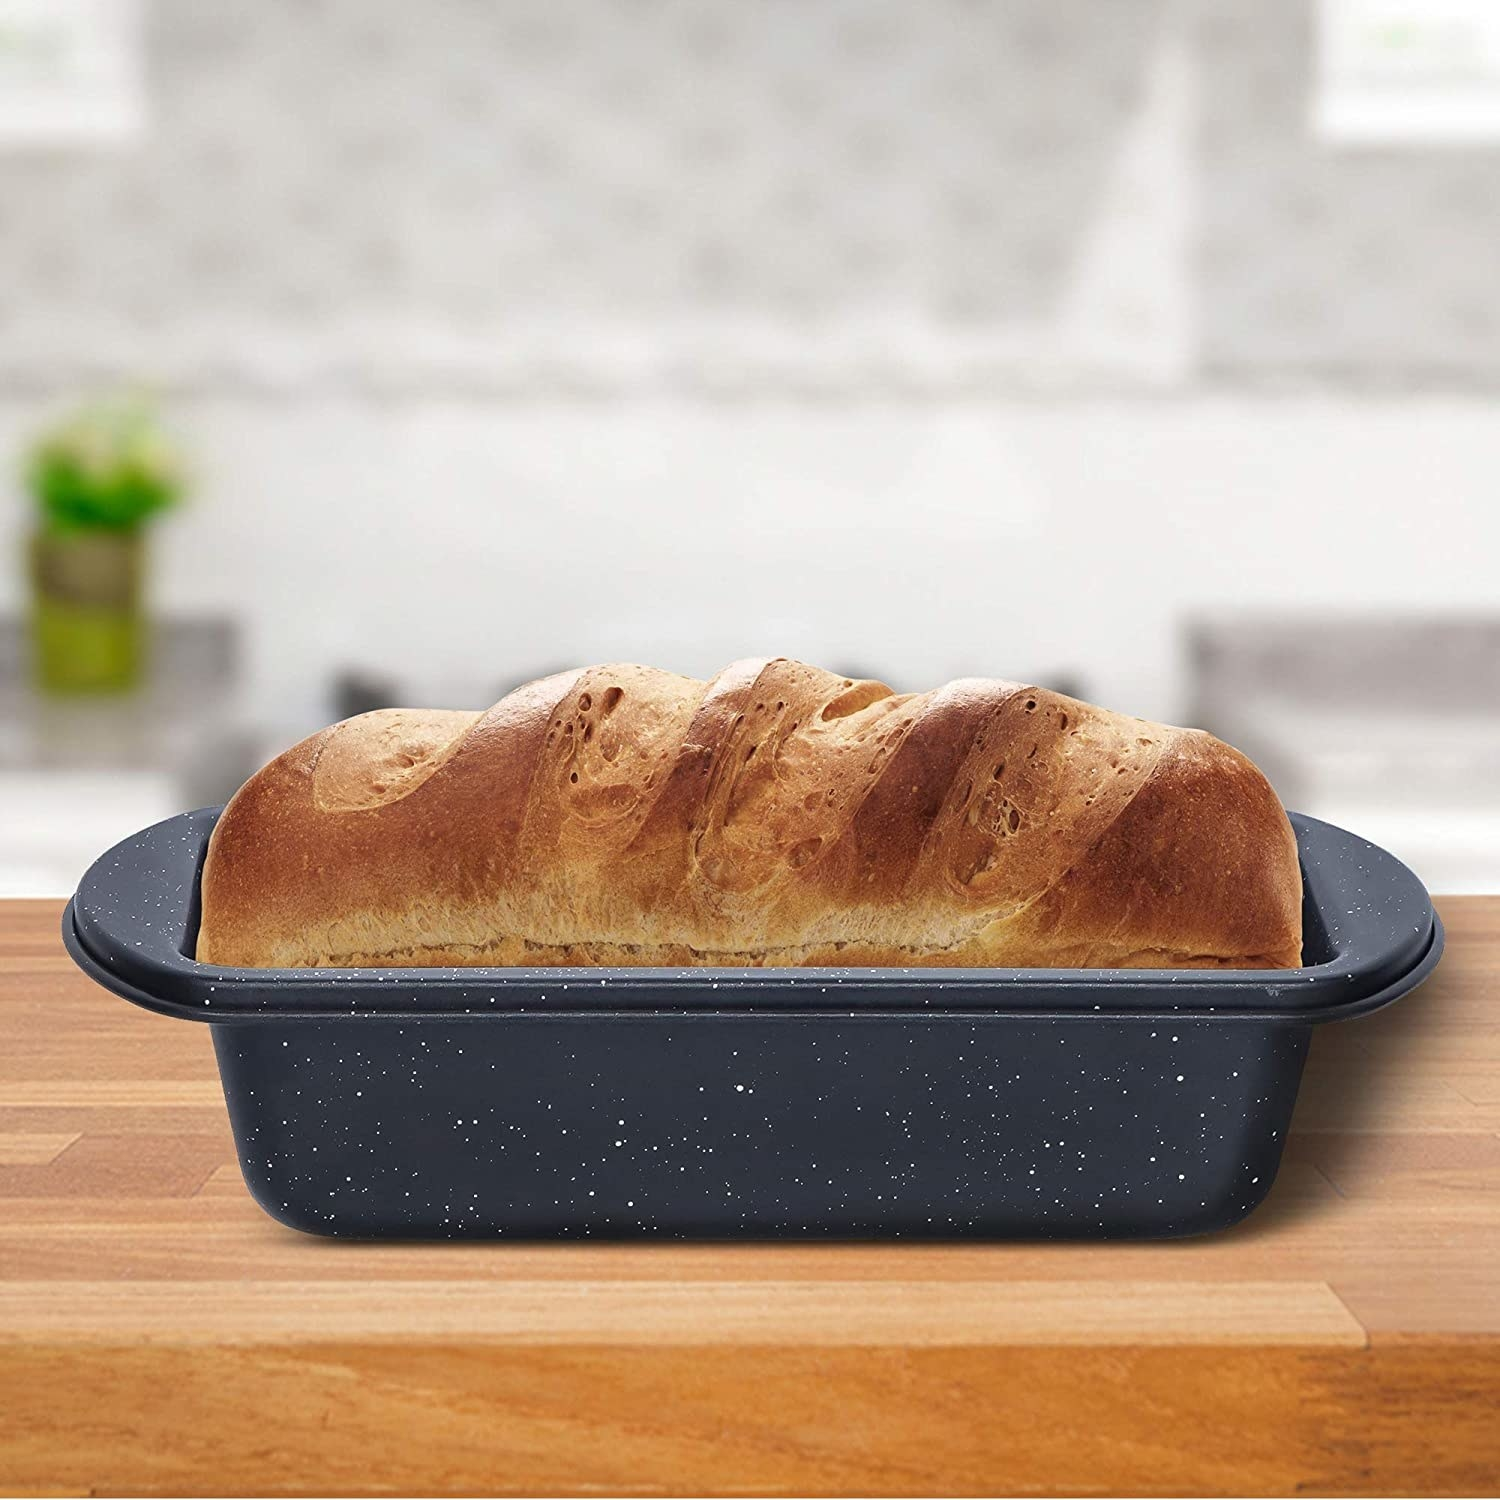 A baking loaf pan containing freshly baked bread